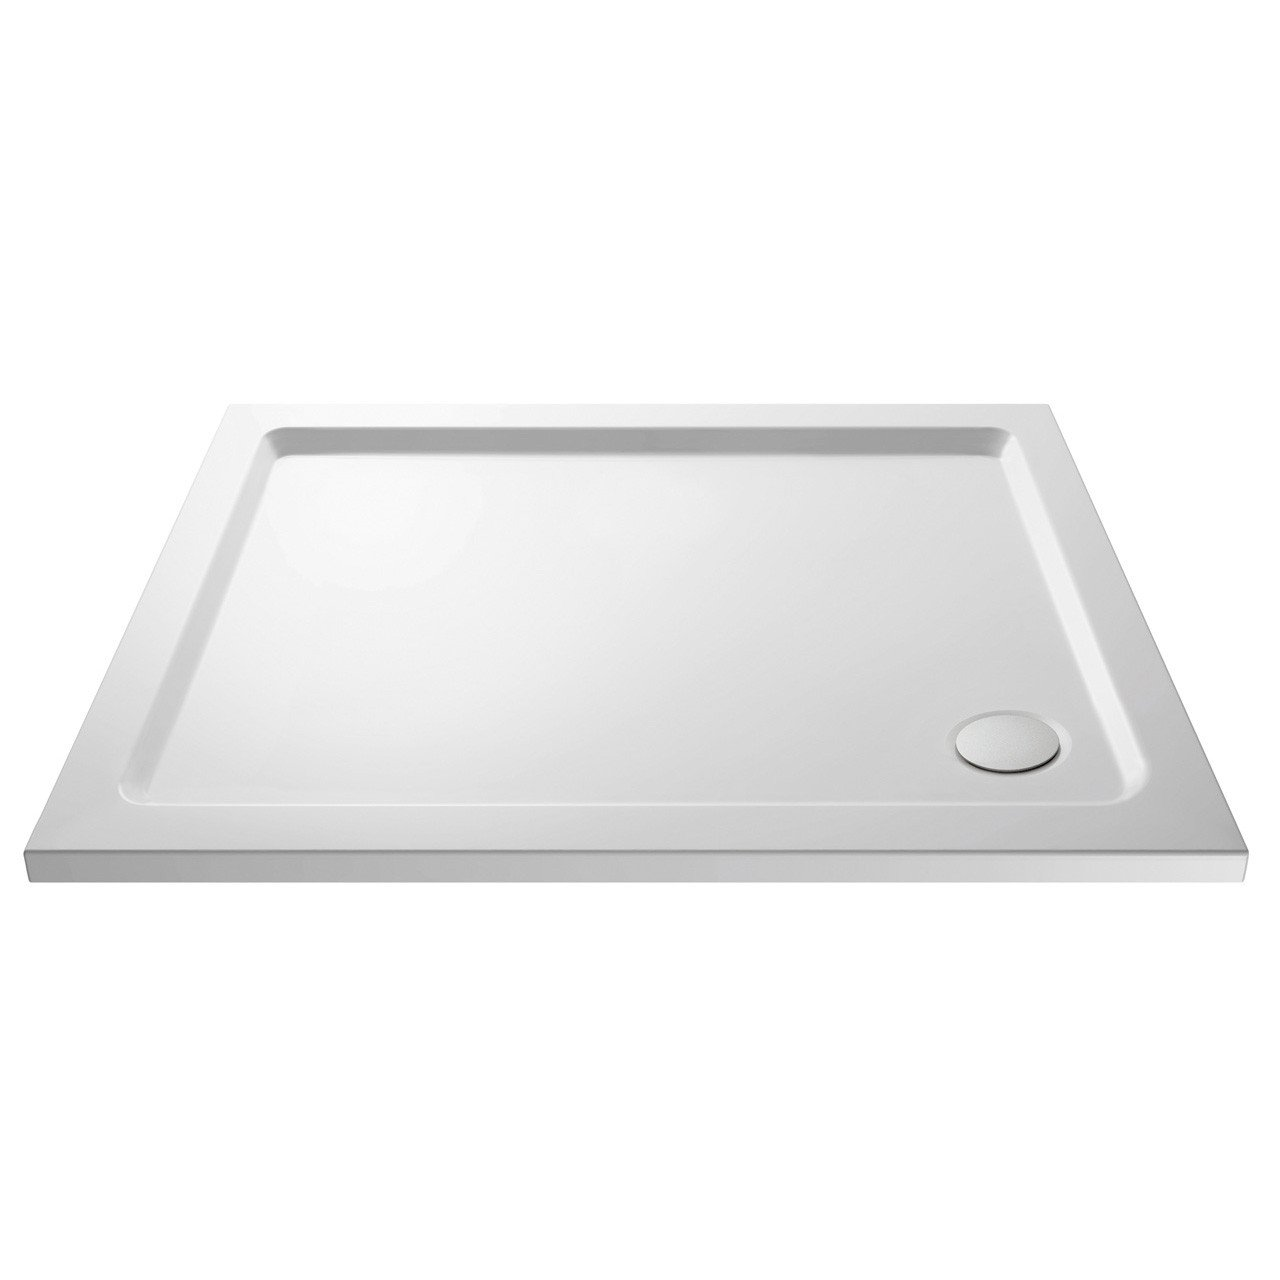 Premiere Pearlstone 1000mm x 760mm x 40mm Rectangular Shower Tray with Corner Waste - NTP012